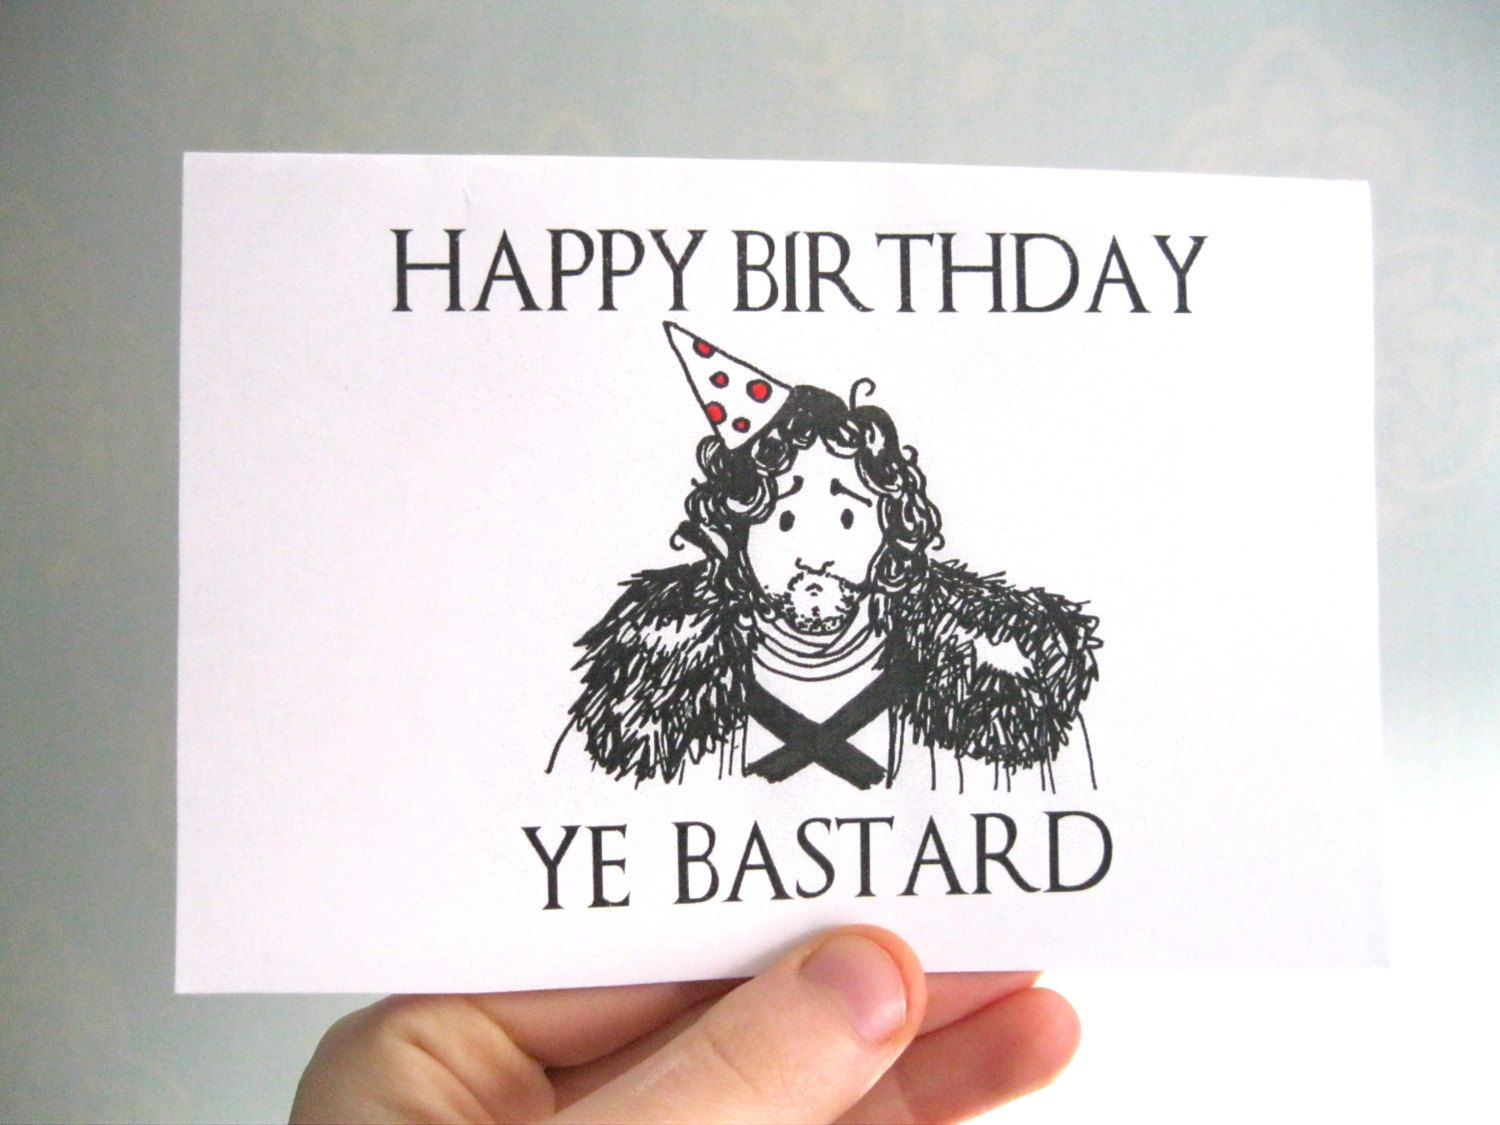 Funny birthday greetings for husband gallery greeting card examples game of thrones birthday card funny rude birthday card husband game of thrones birthday card funny bookmarktalkfo Gallery